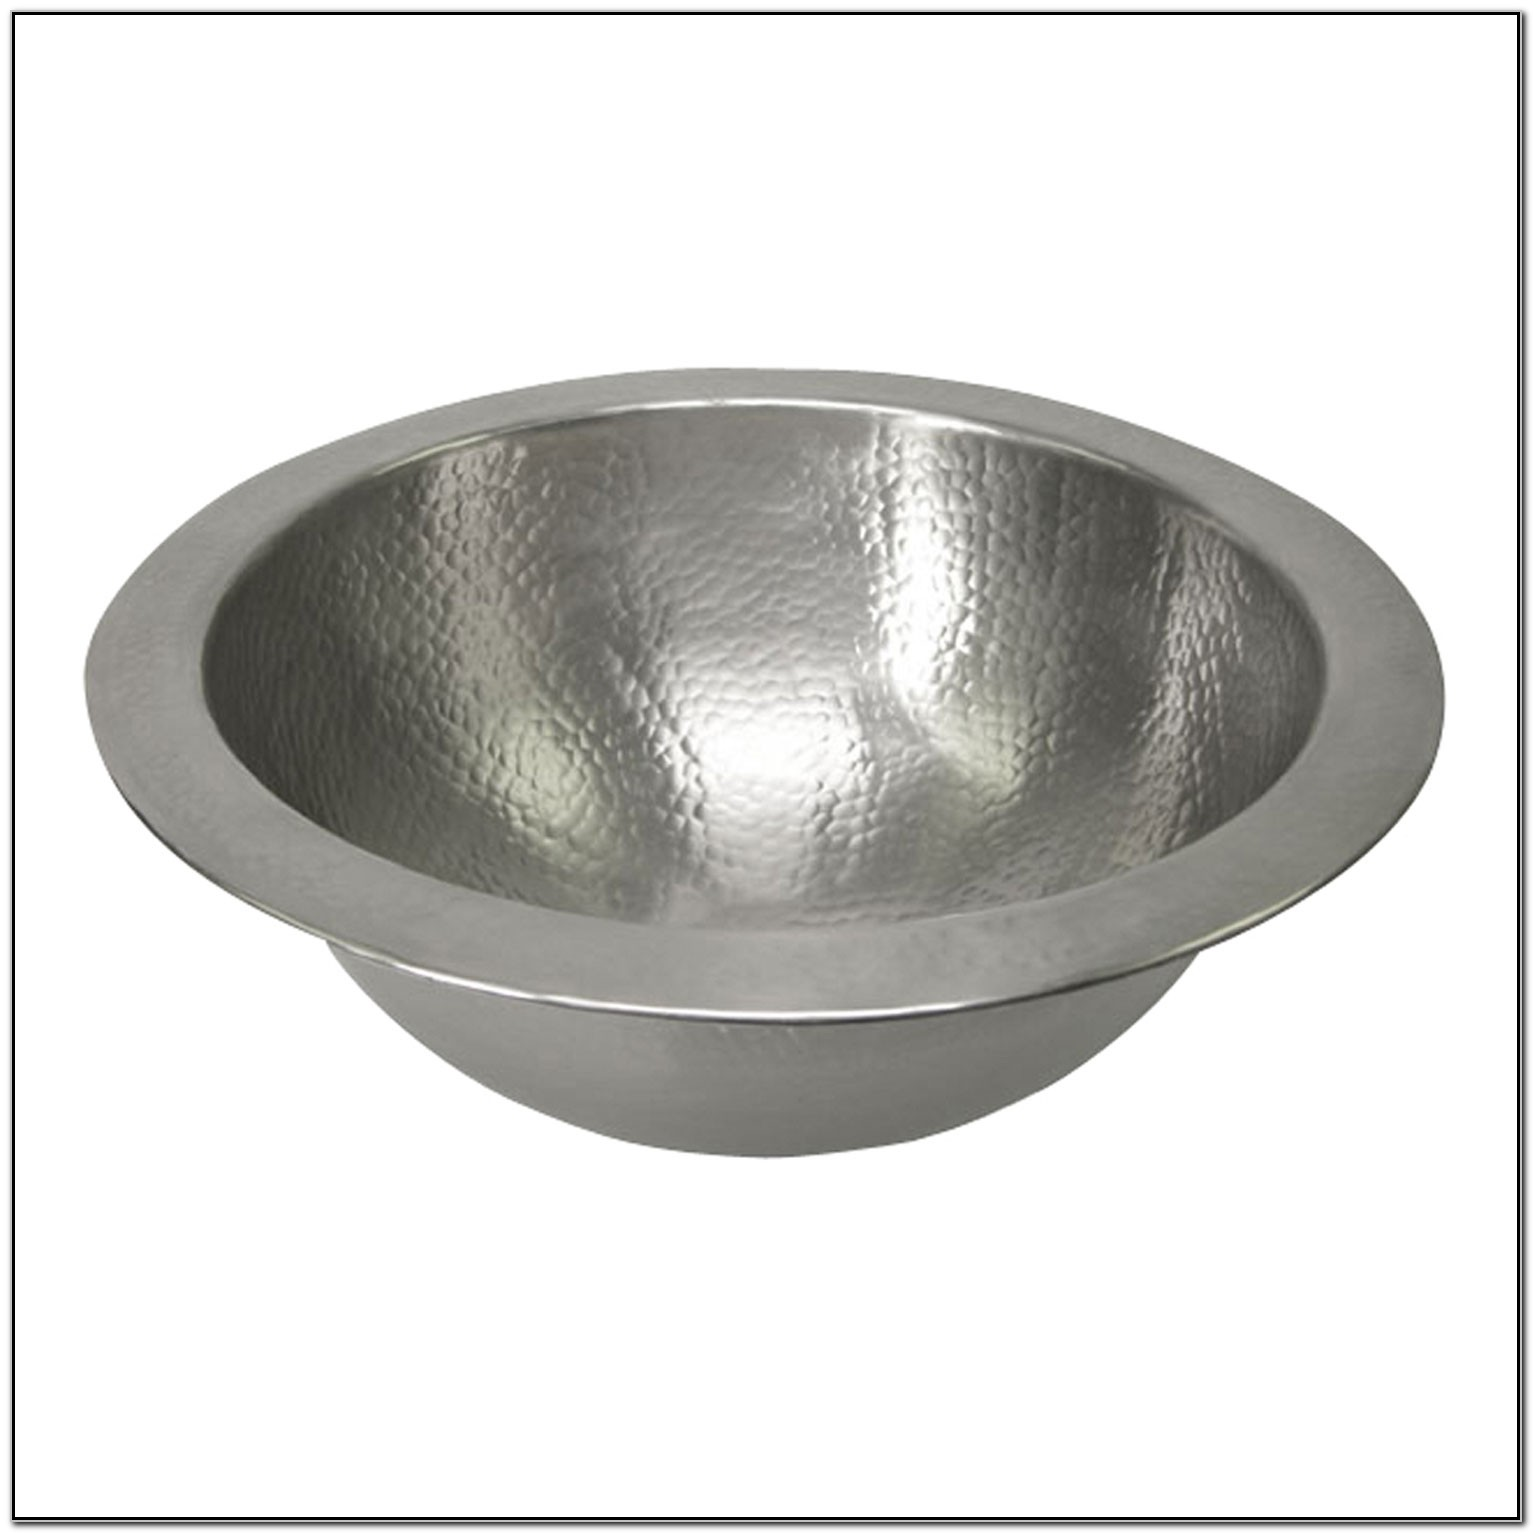 12 Inch Round Undermount Bathroom Sink